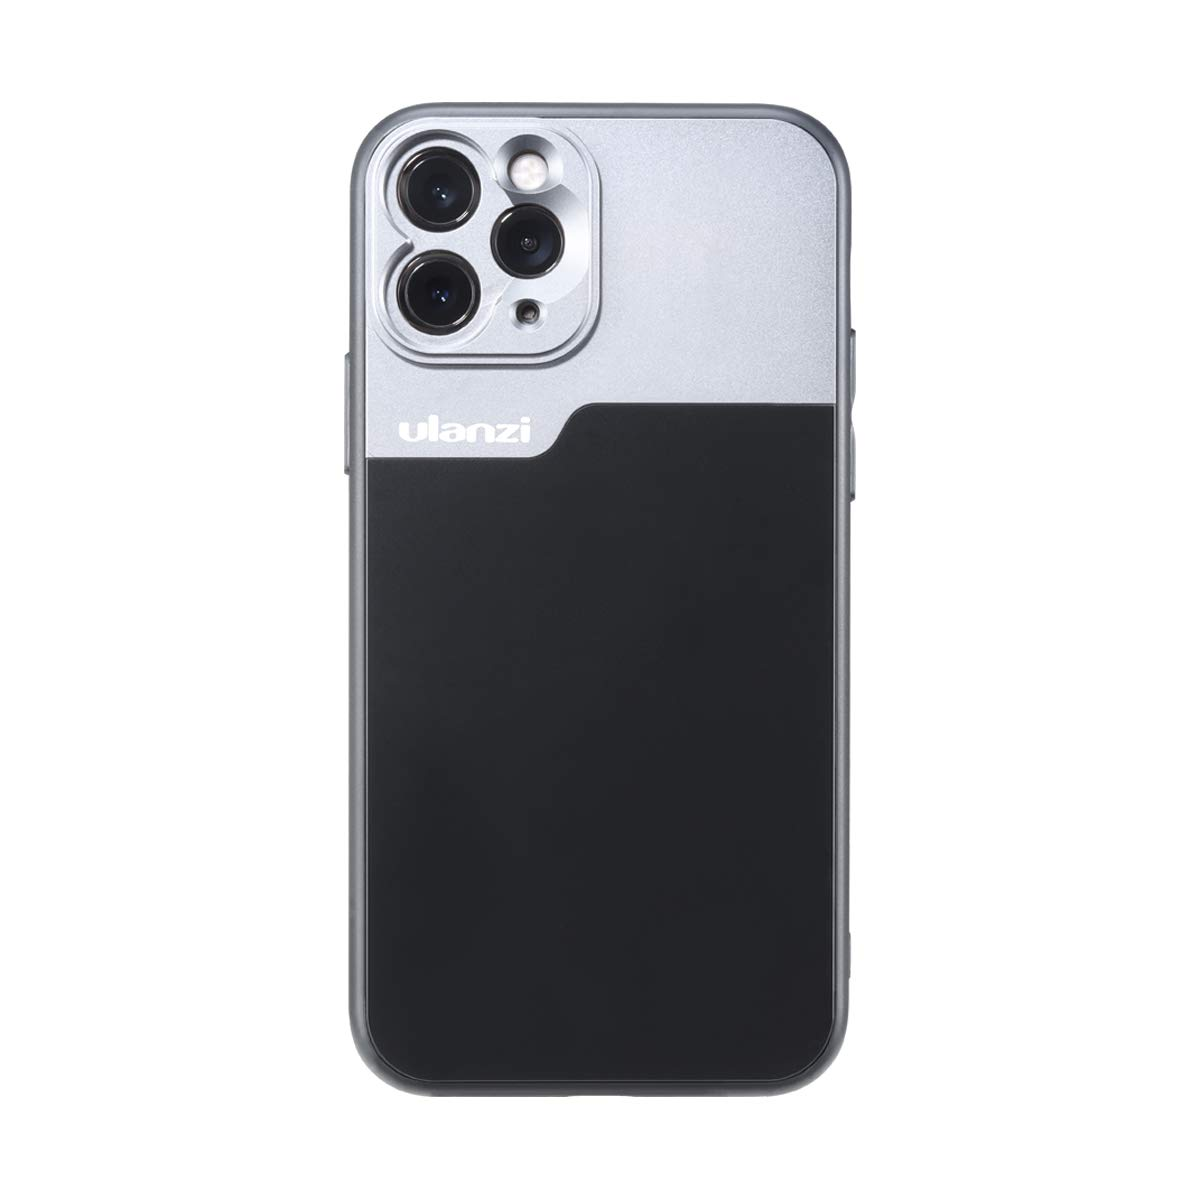 ULANZI Phone Case Support Extra Camera Lens (17mm Diameter) Protective Unique Design Shakeproof Solid Case Cover for iPhone 11 Pro Using 1.33X Anamorphic Lens Wide Angle Macro Lens DOF Adapter